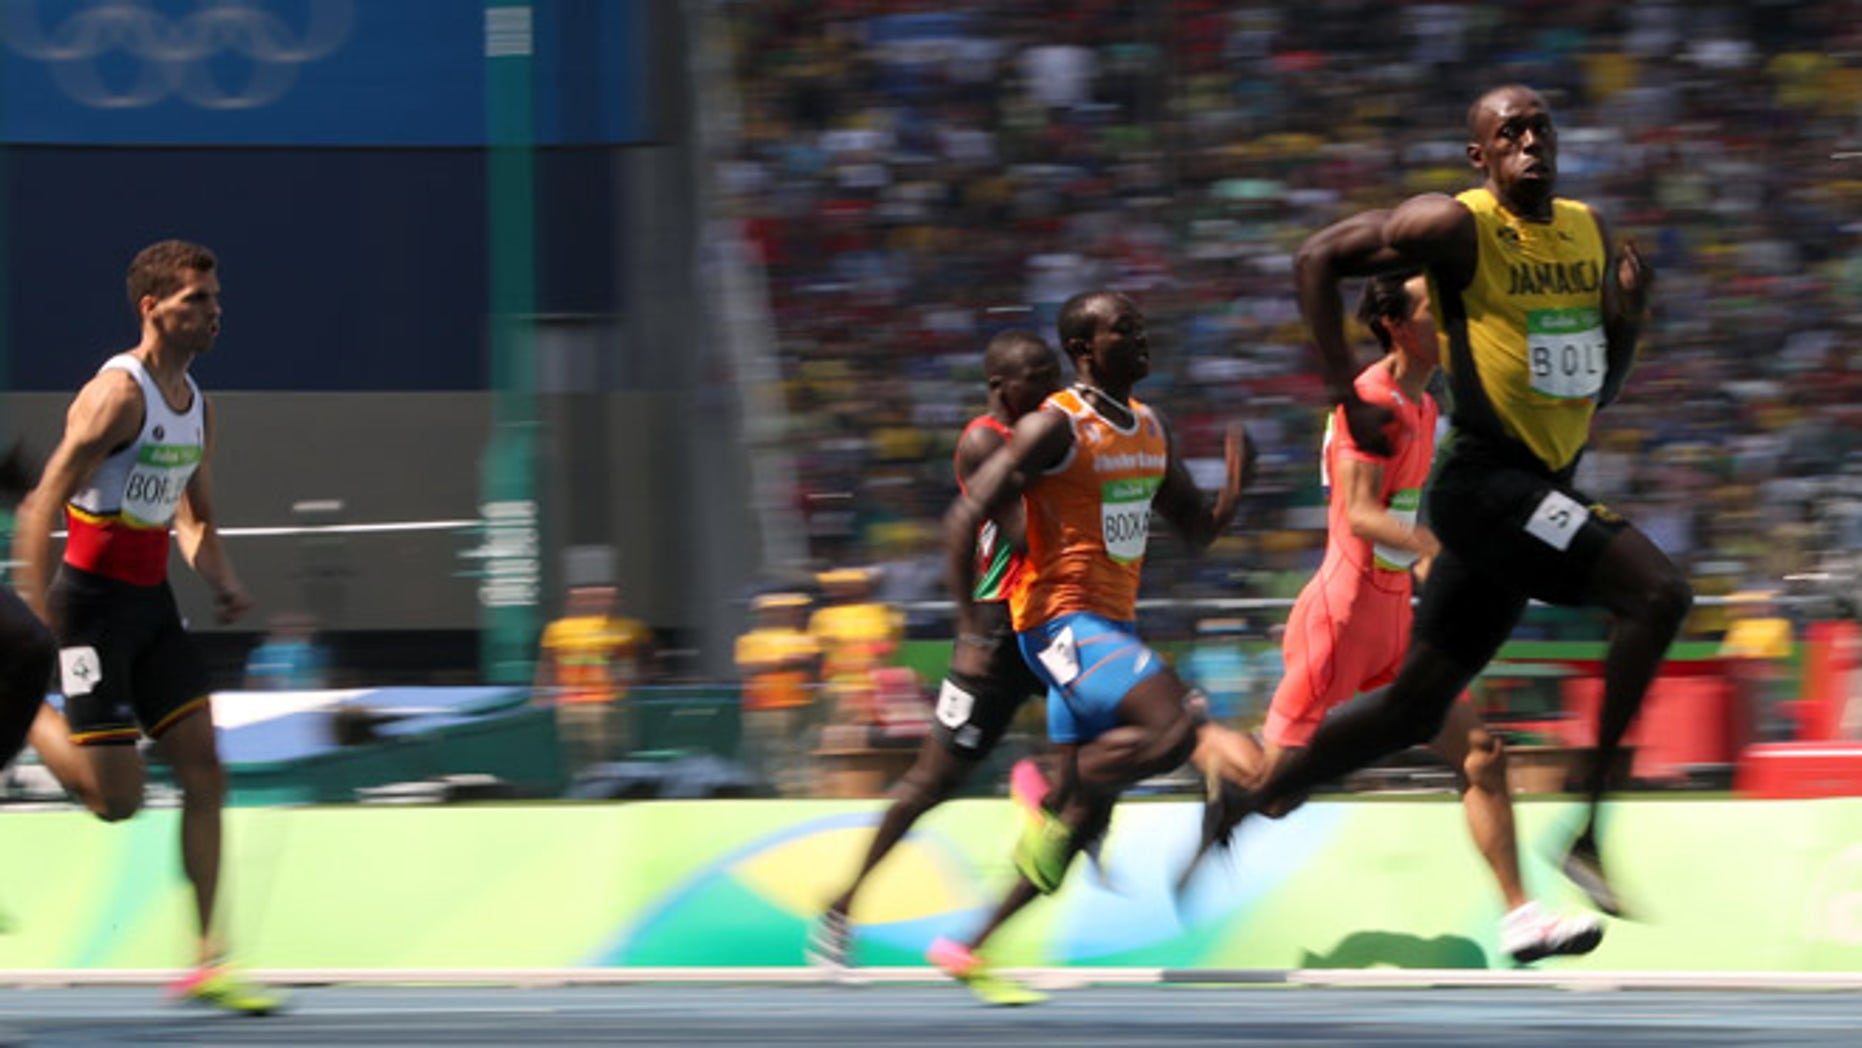 Jamaica's Usain Bolt, right, competes in a men's 200-meter heat during the athletics competitions of the 2016 Summer Olympics at the Olympic stadium in Rio de Janeiro, Brazil, Tuesday, Aug. 16, 2016.